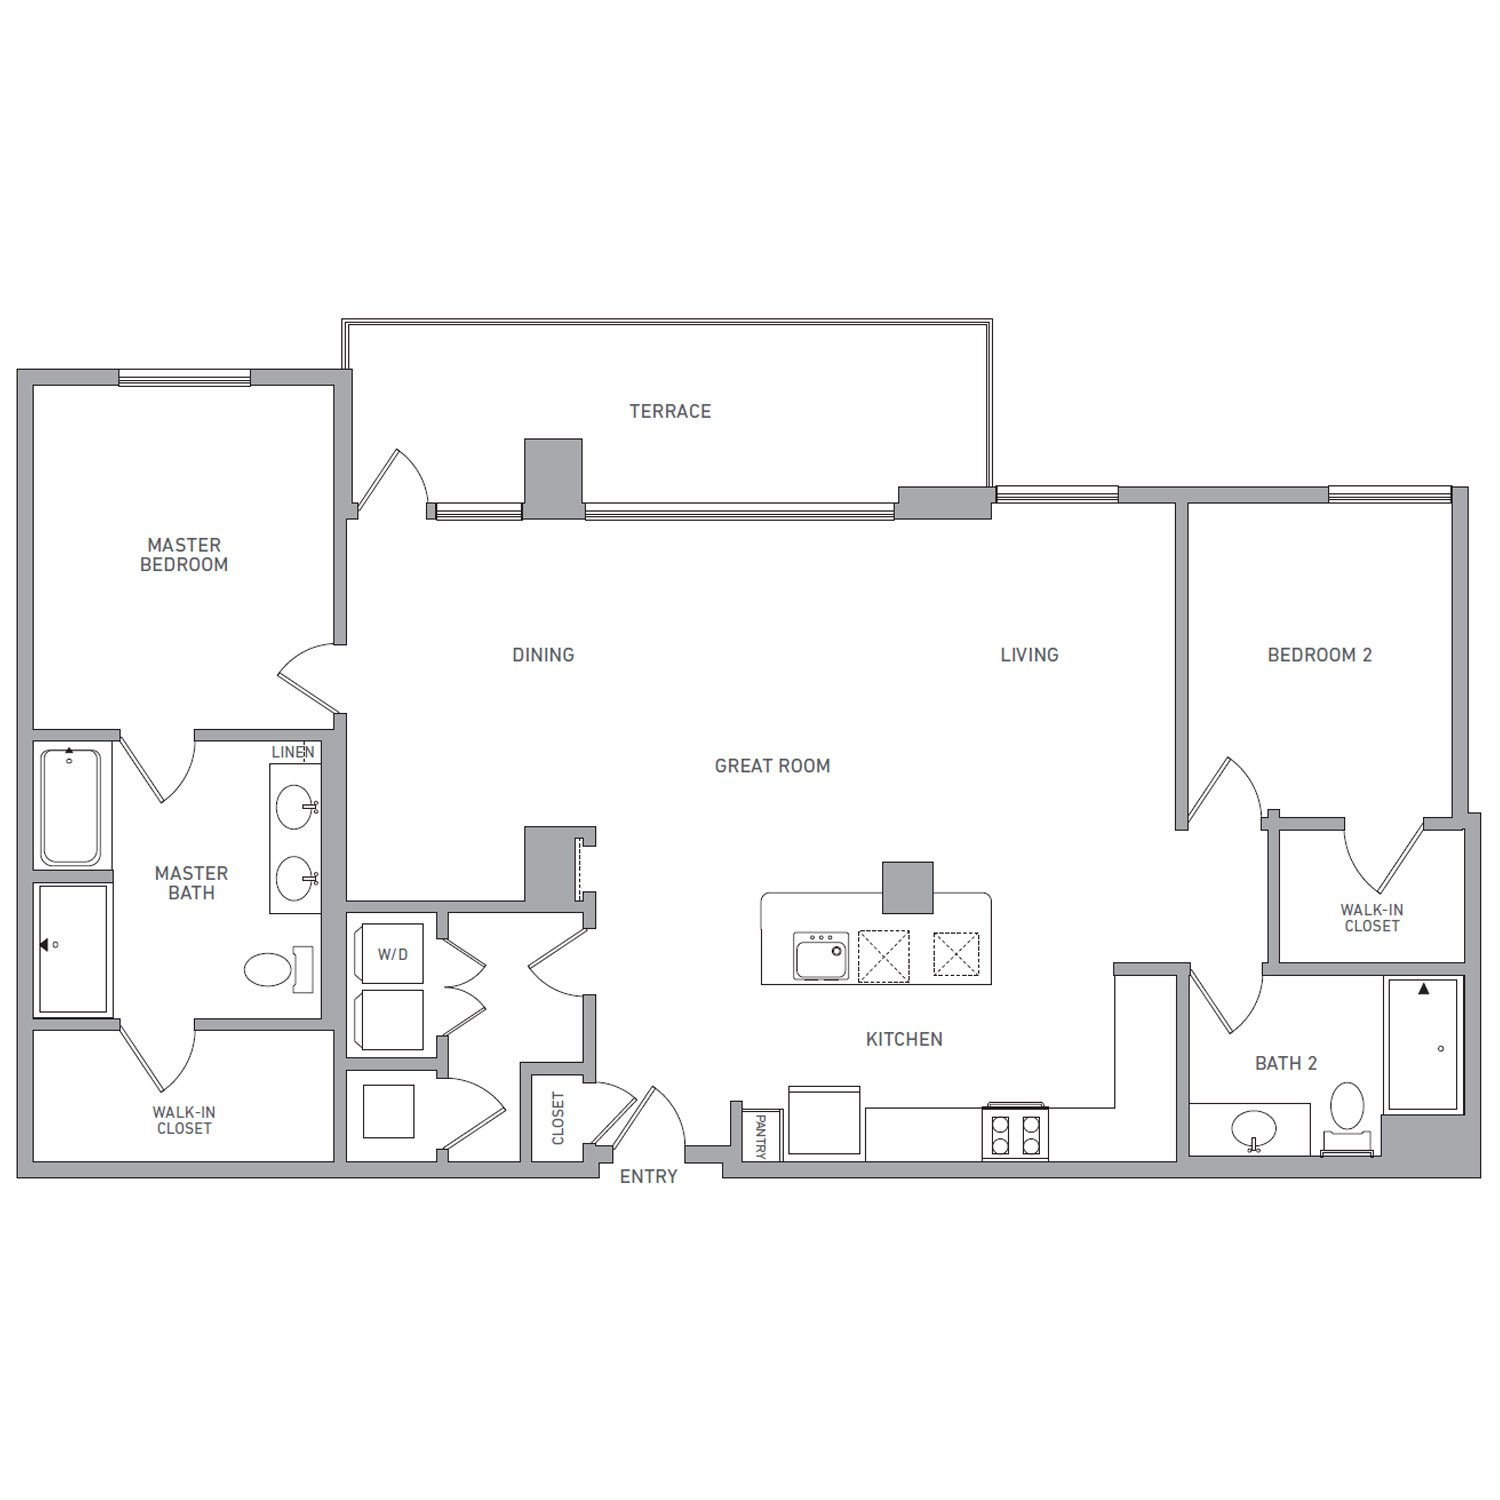 P H 219 floor plan diagram. Penthouse apartment with two bedrooms, two bathrooms, an open kitchen dining and living area, a terrace, and a washer dryer.